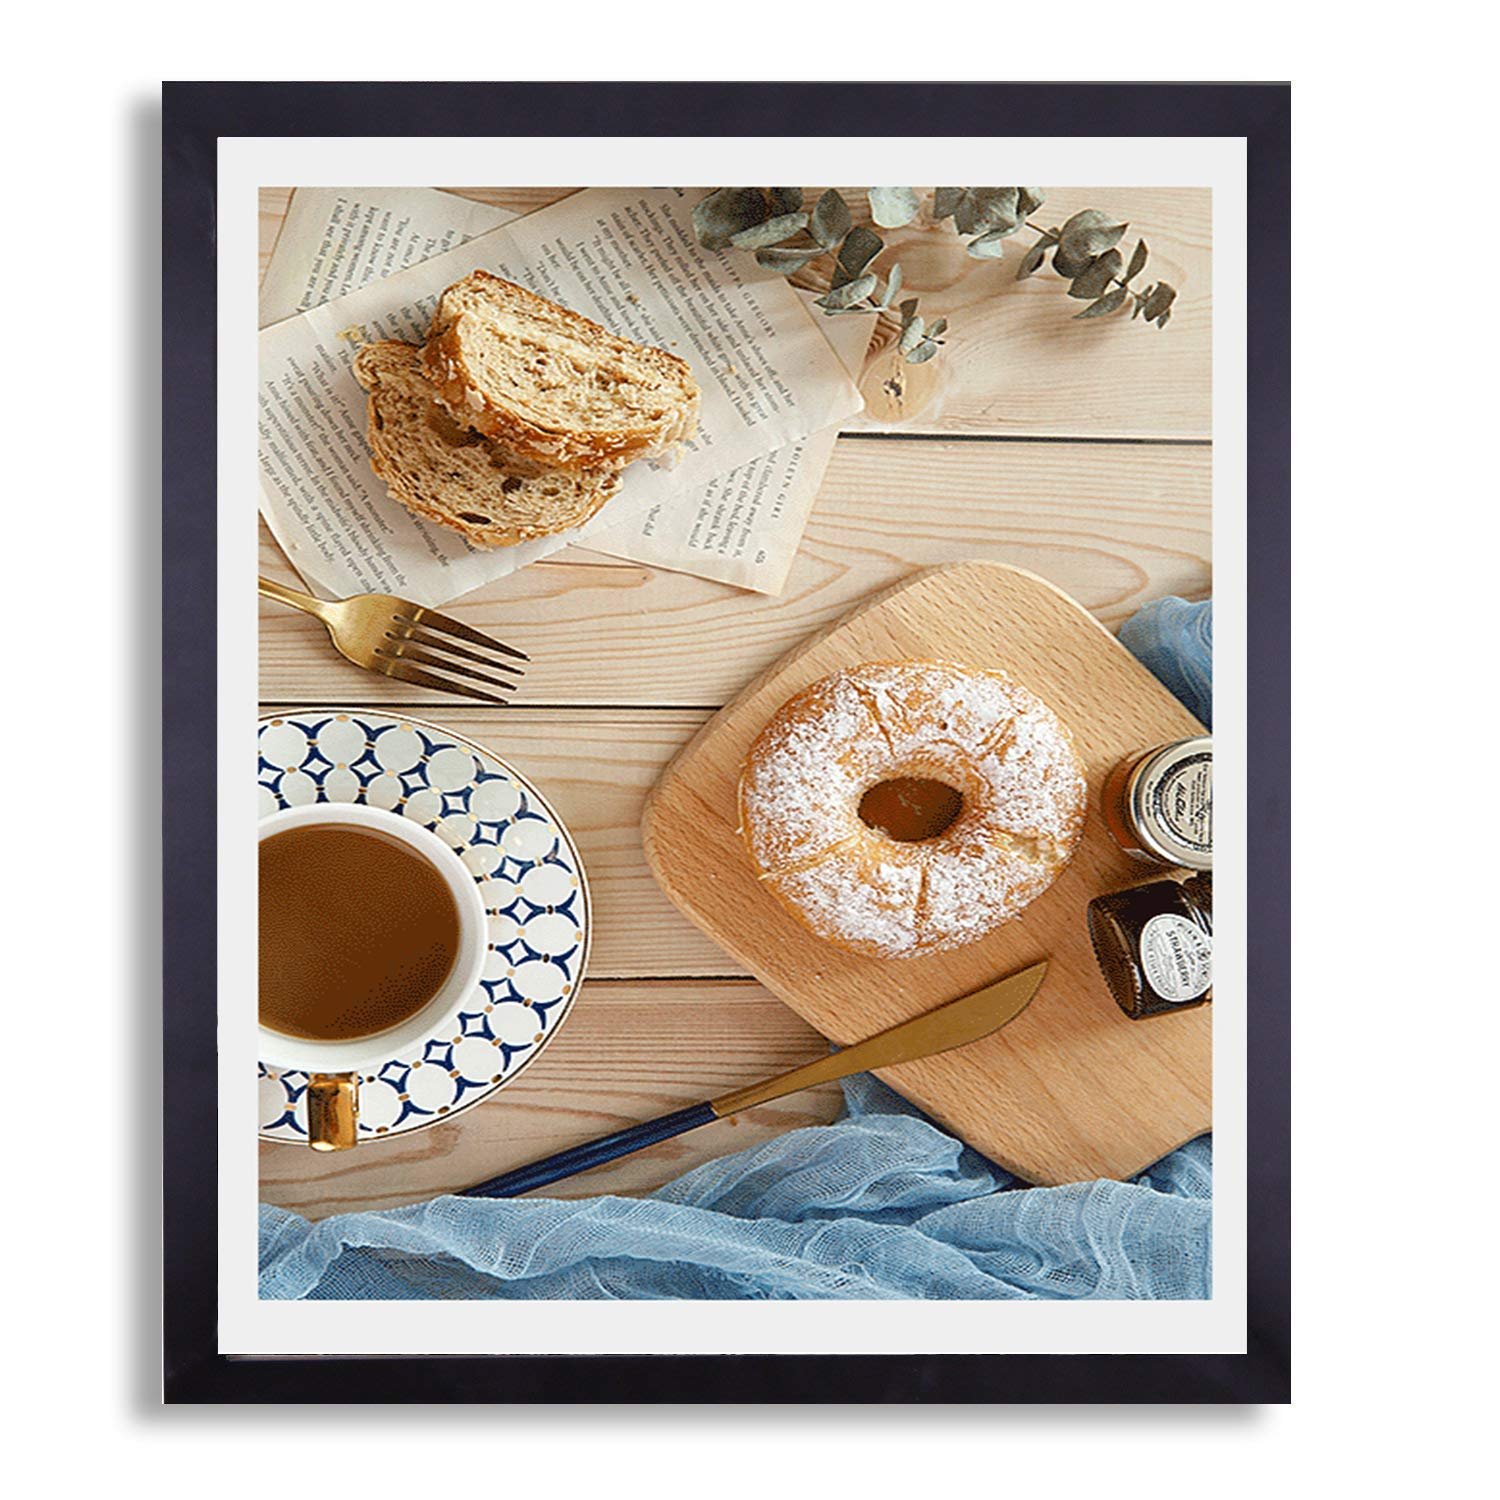 Cheap Photo Frame 20 X 24 Find Photo Frame 20 X 24 Deals On Line At